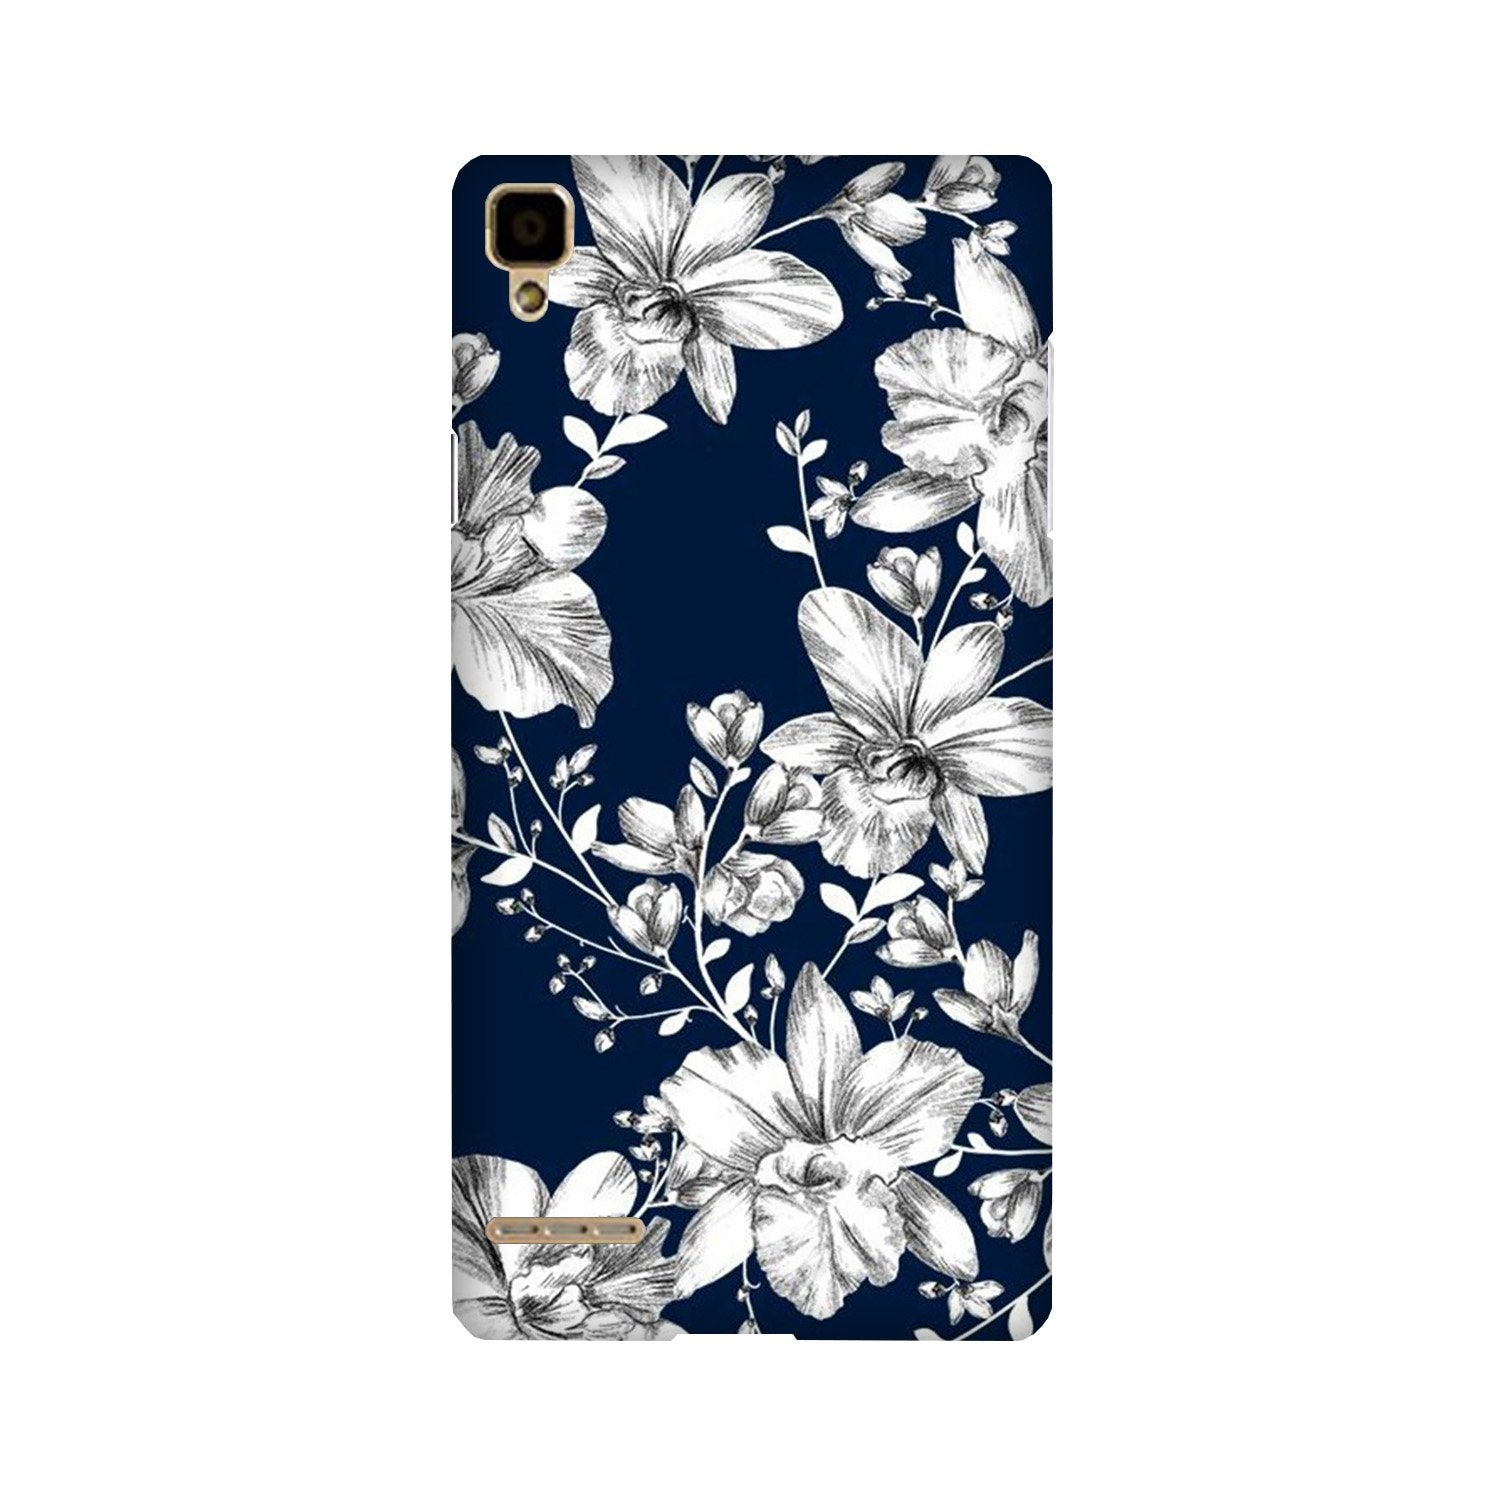 White flowers Blue Background Case for Oppo F1